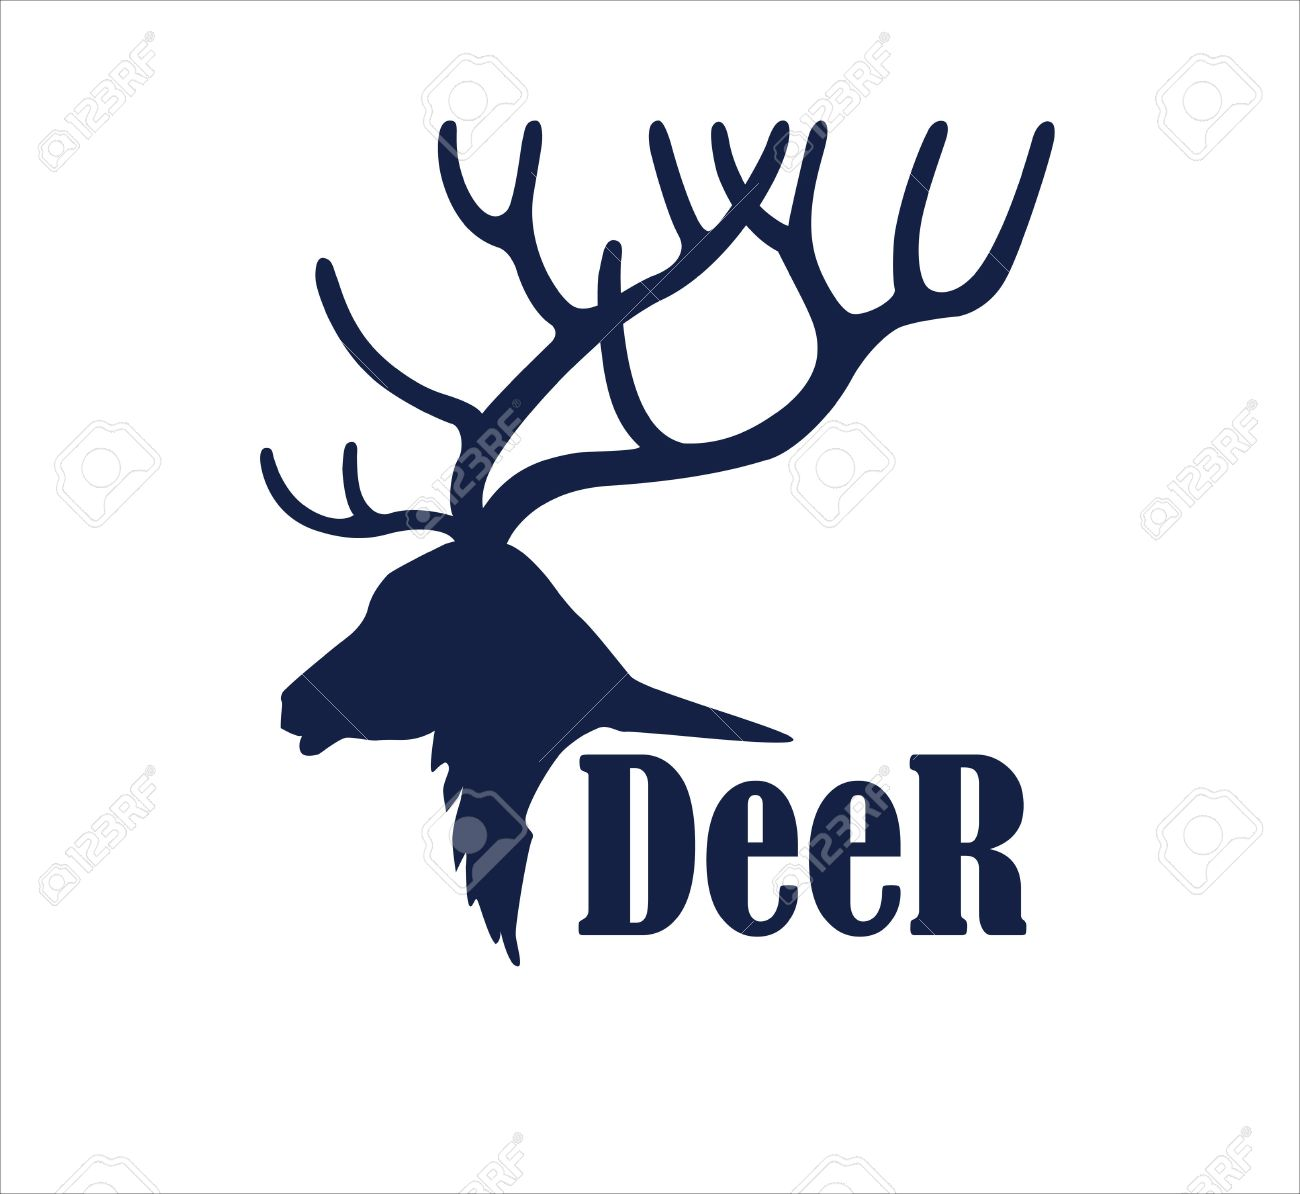 deer logo design template silhouette of deer head in profile rh 123rf com deer head emblem deer head logo clothing